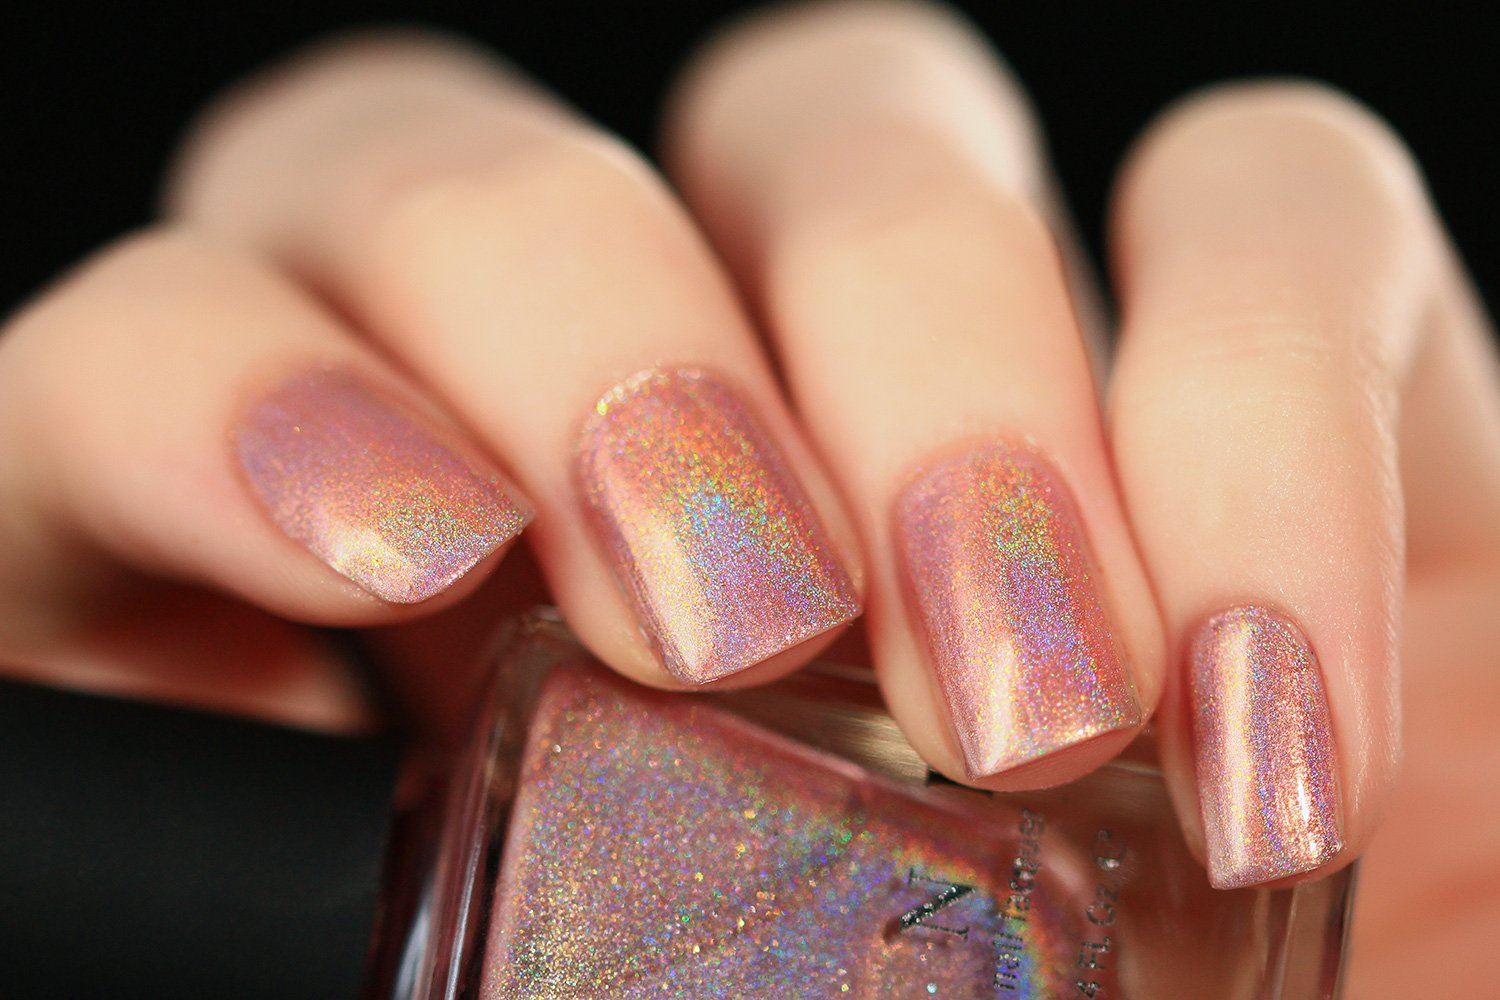 Amazon.com : ILNP Flower Girl - Vintage Pink Holographic Nail Polish ...